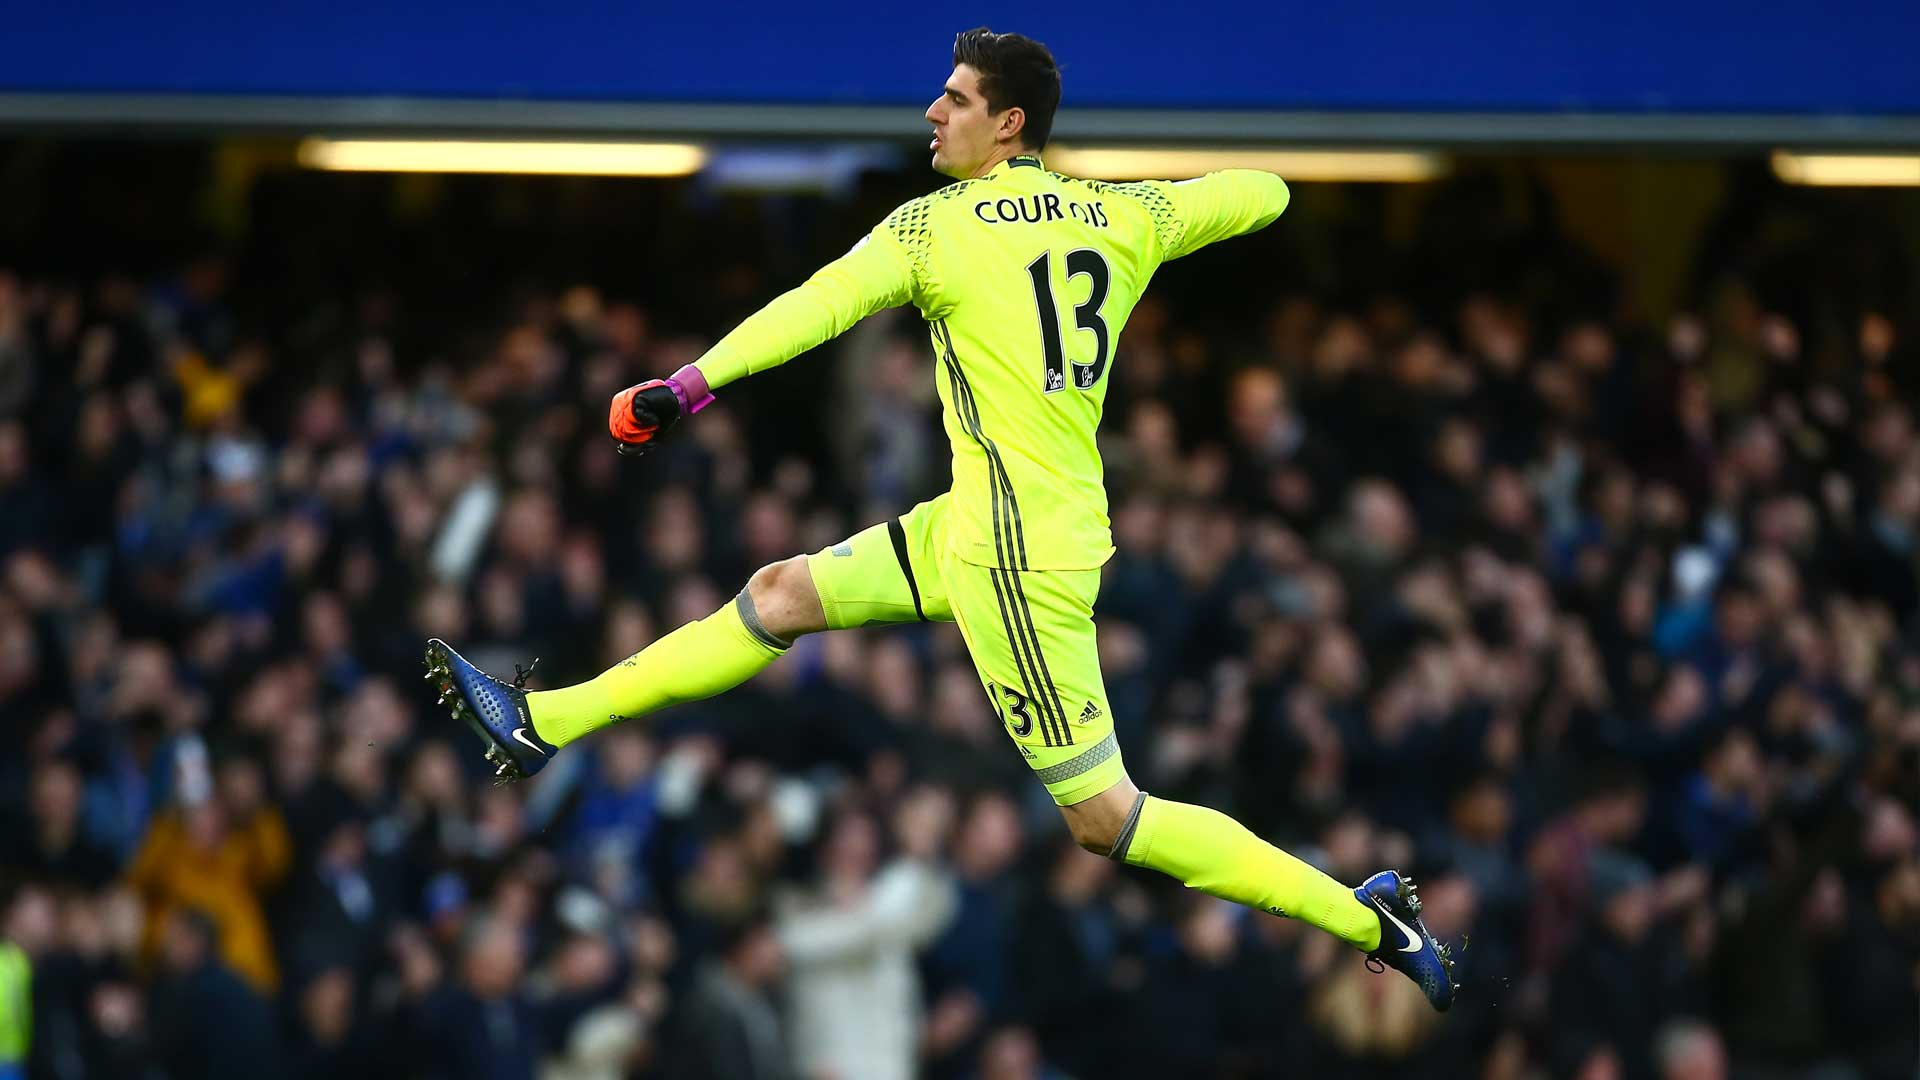 Photo of Chelsea Offer to Make Courtois World Highest-paid Goalkeeper In New Contract